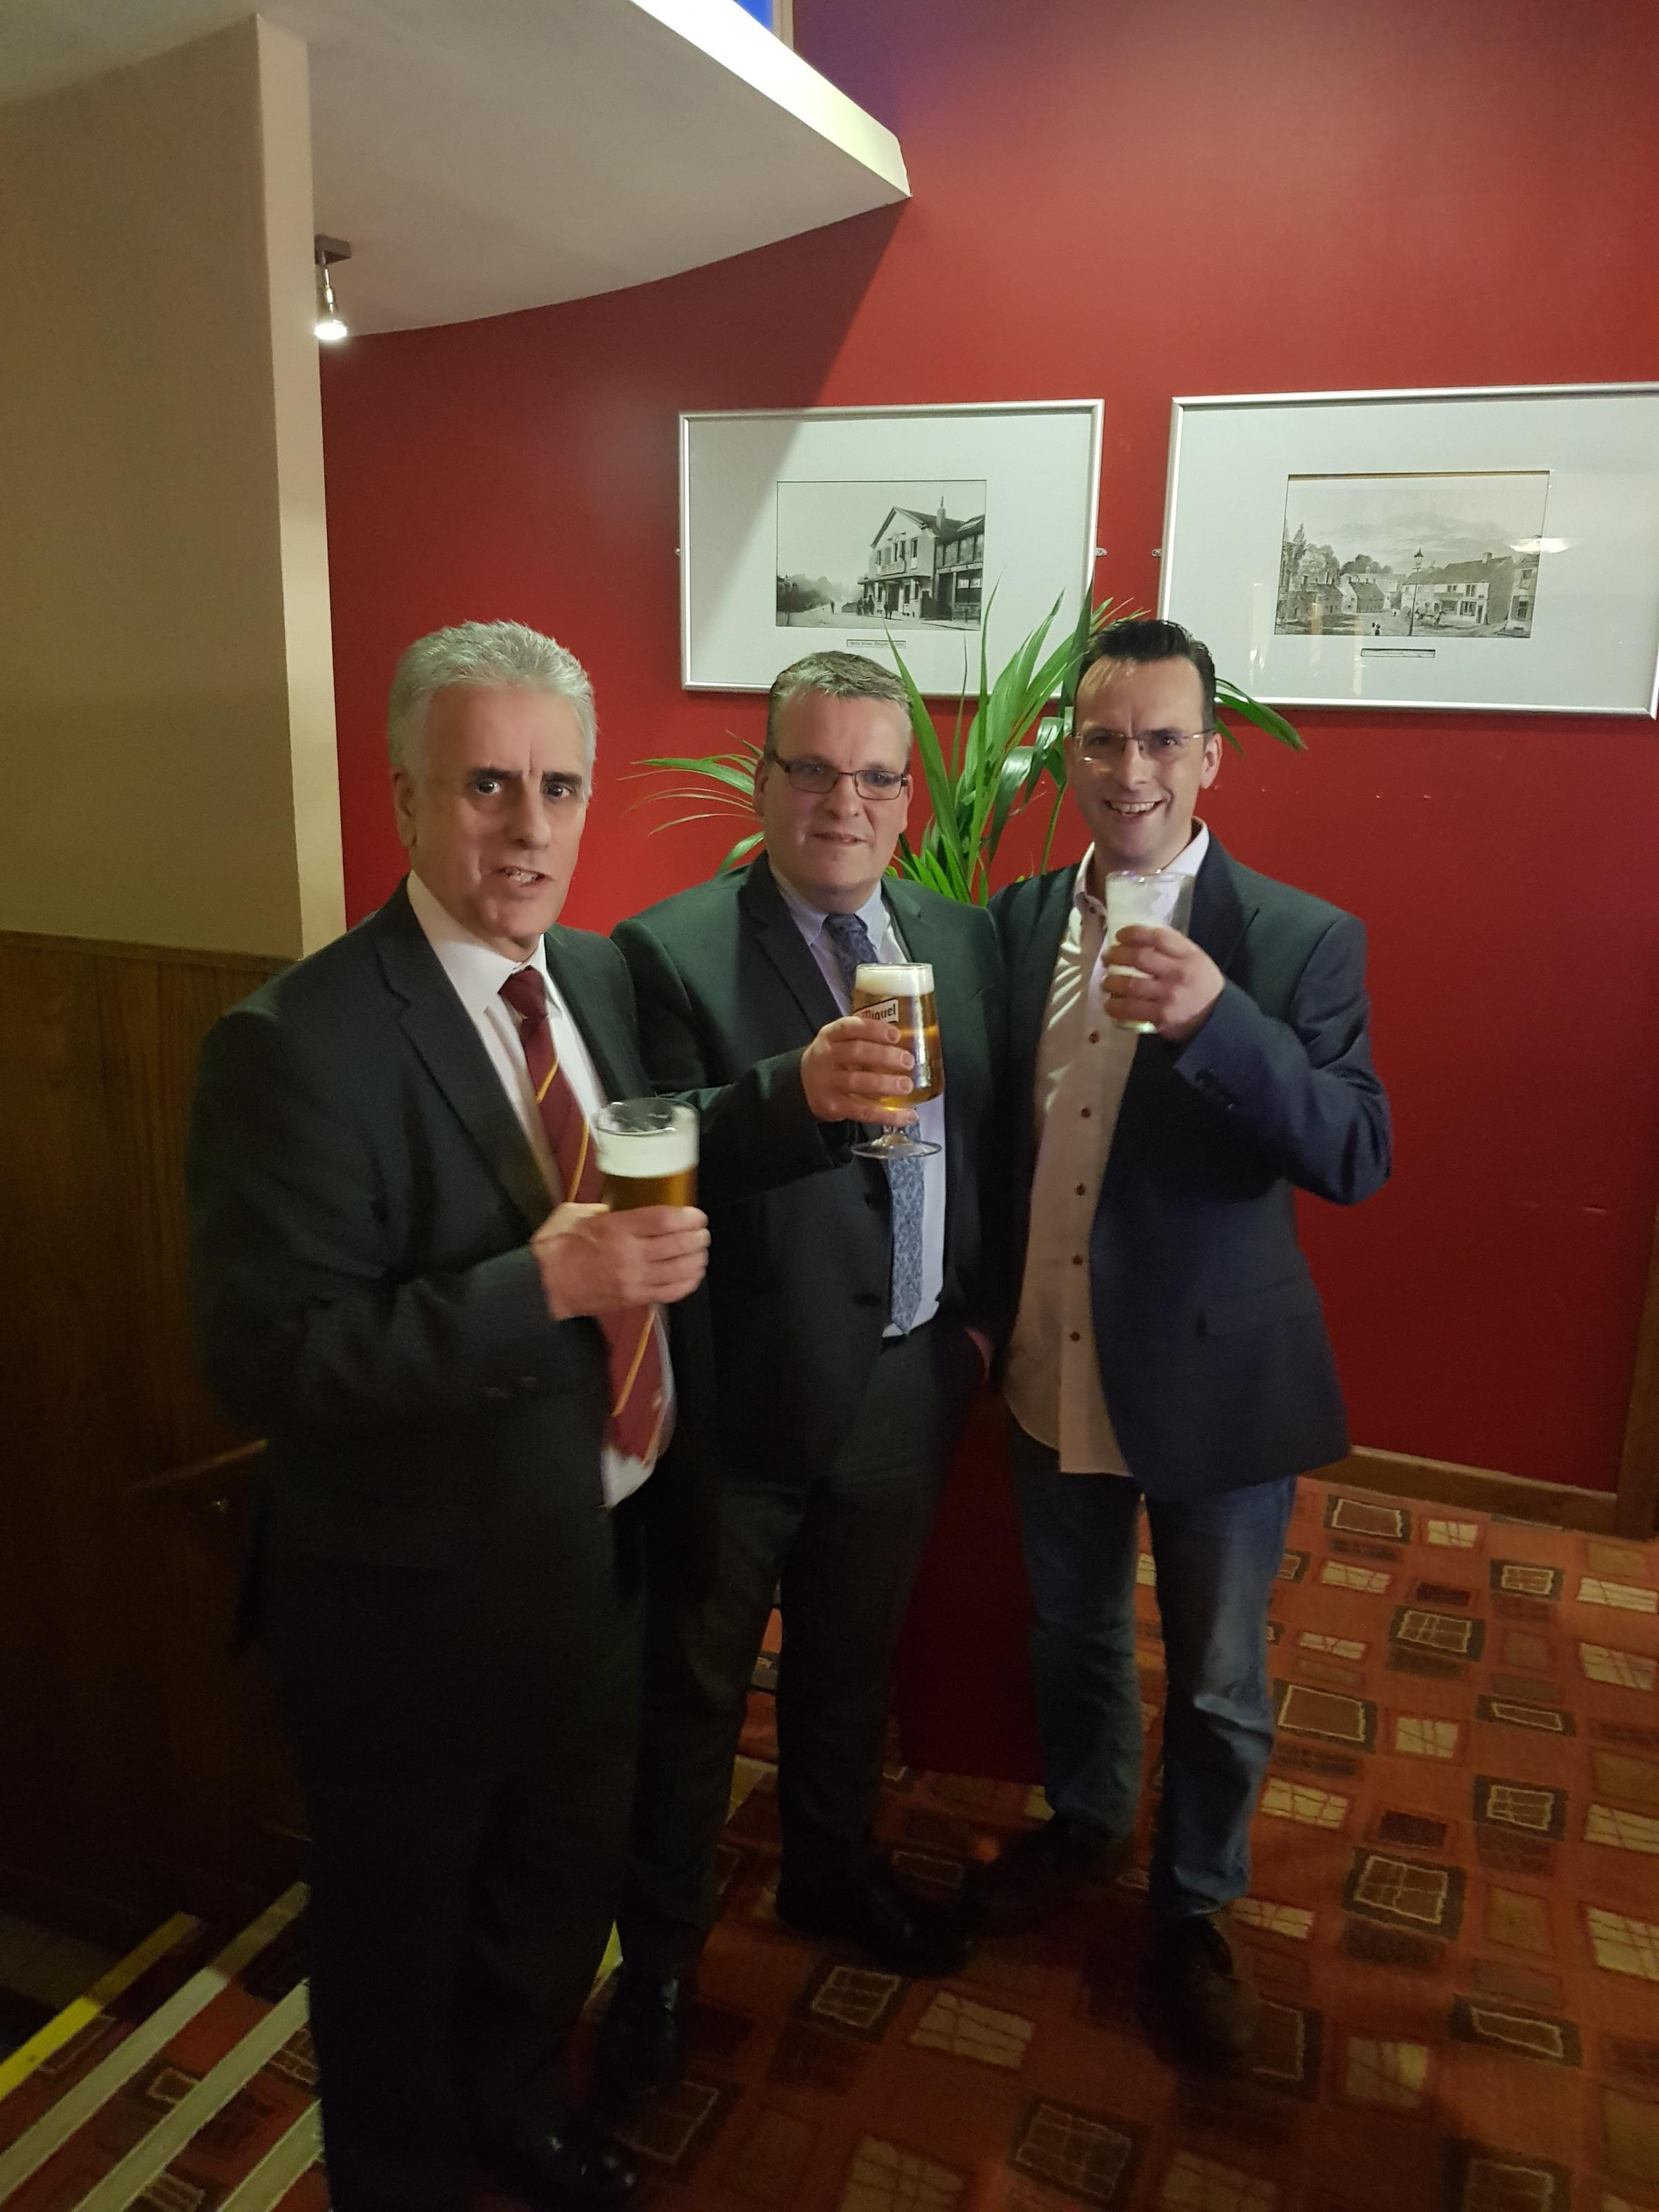 Andrew Vaux, centre, and Ian and John Raper toast the firm's expansion and anniversary